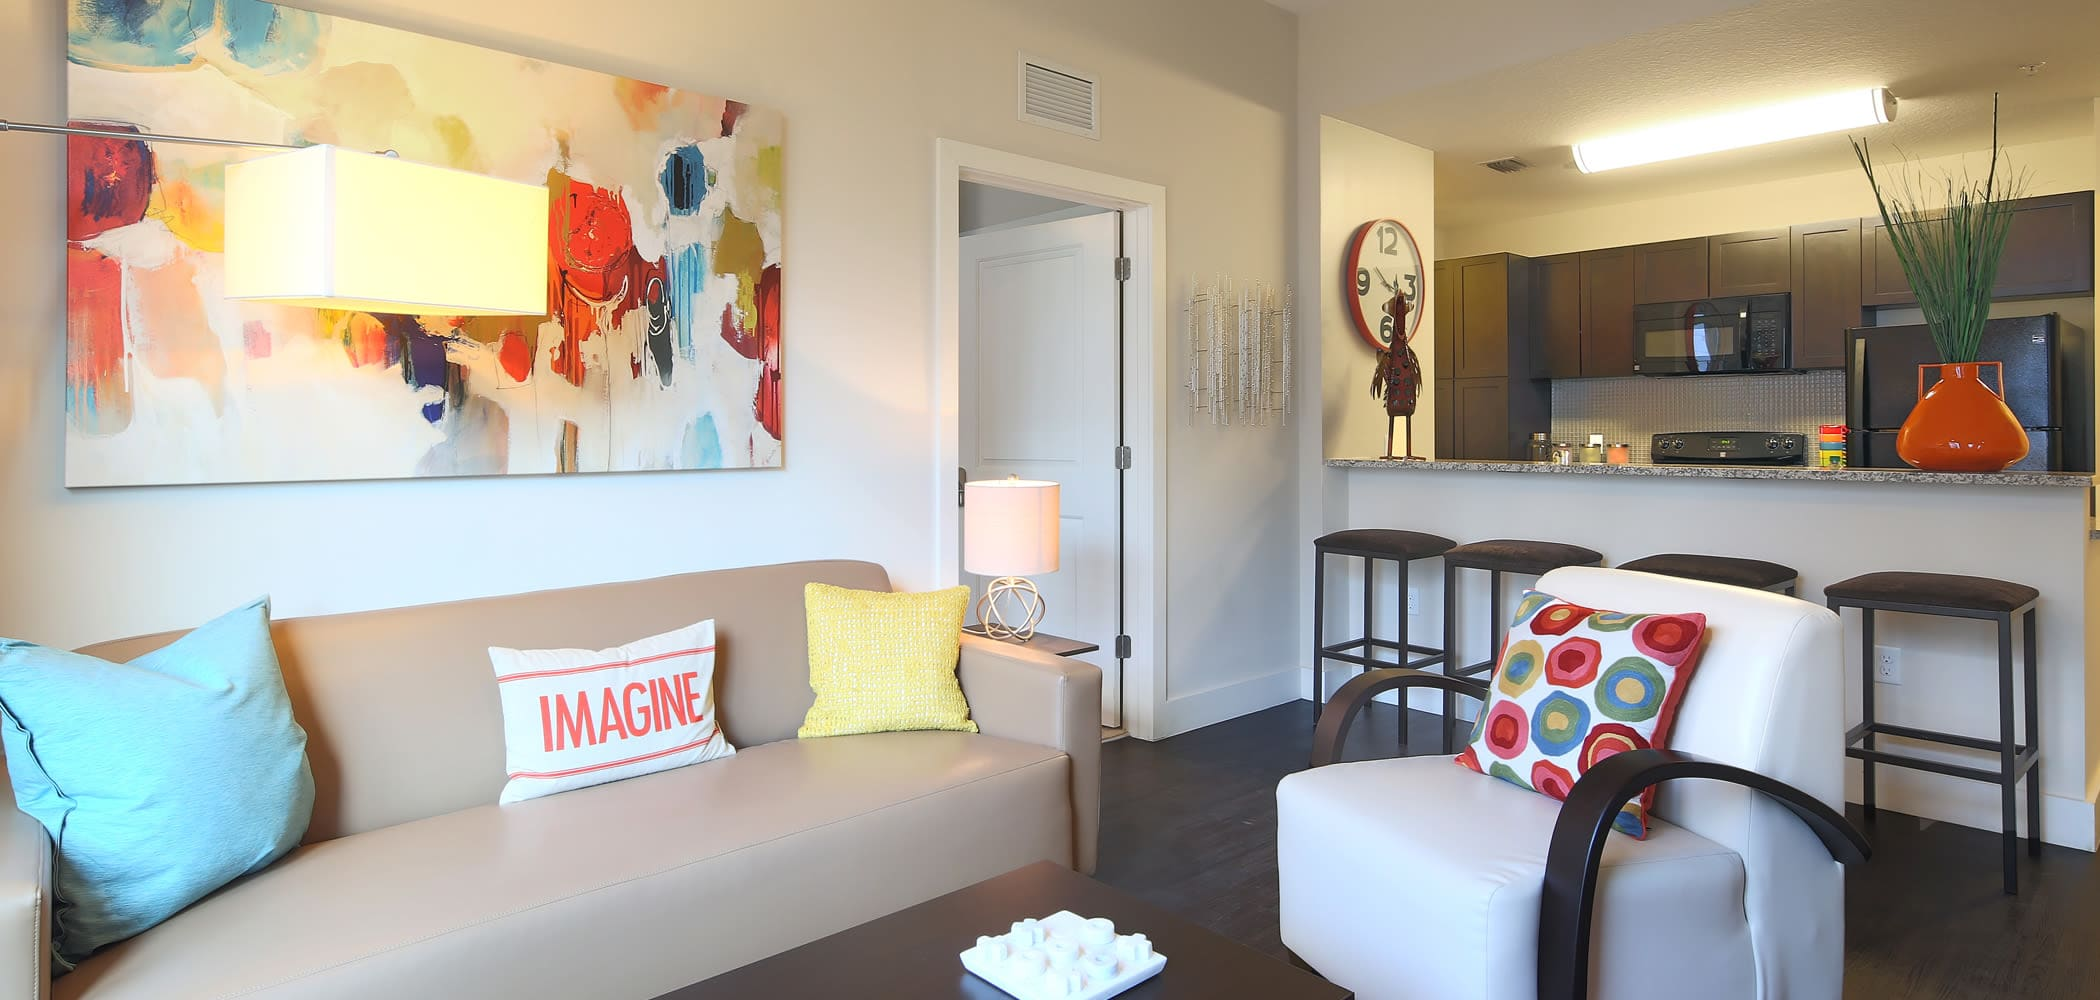 Living room and kitchen breakfast nook at University Park in Boca Raton, Florida